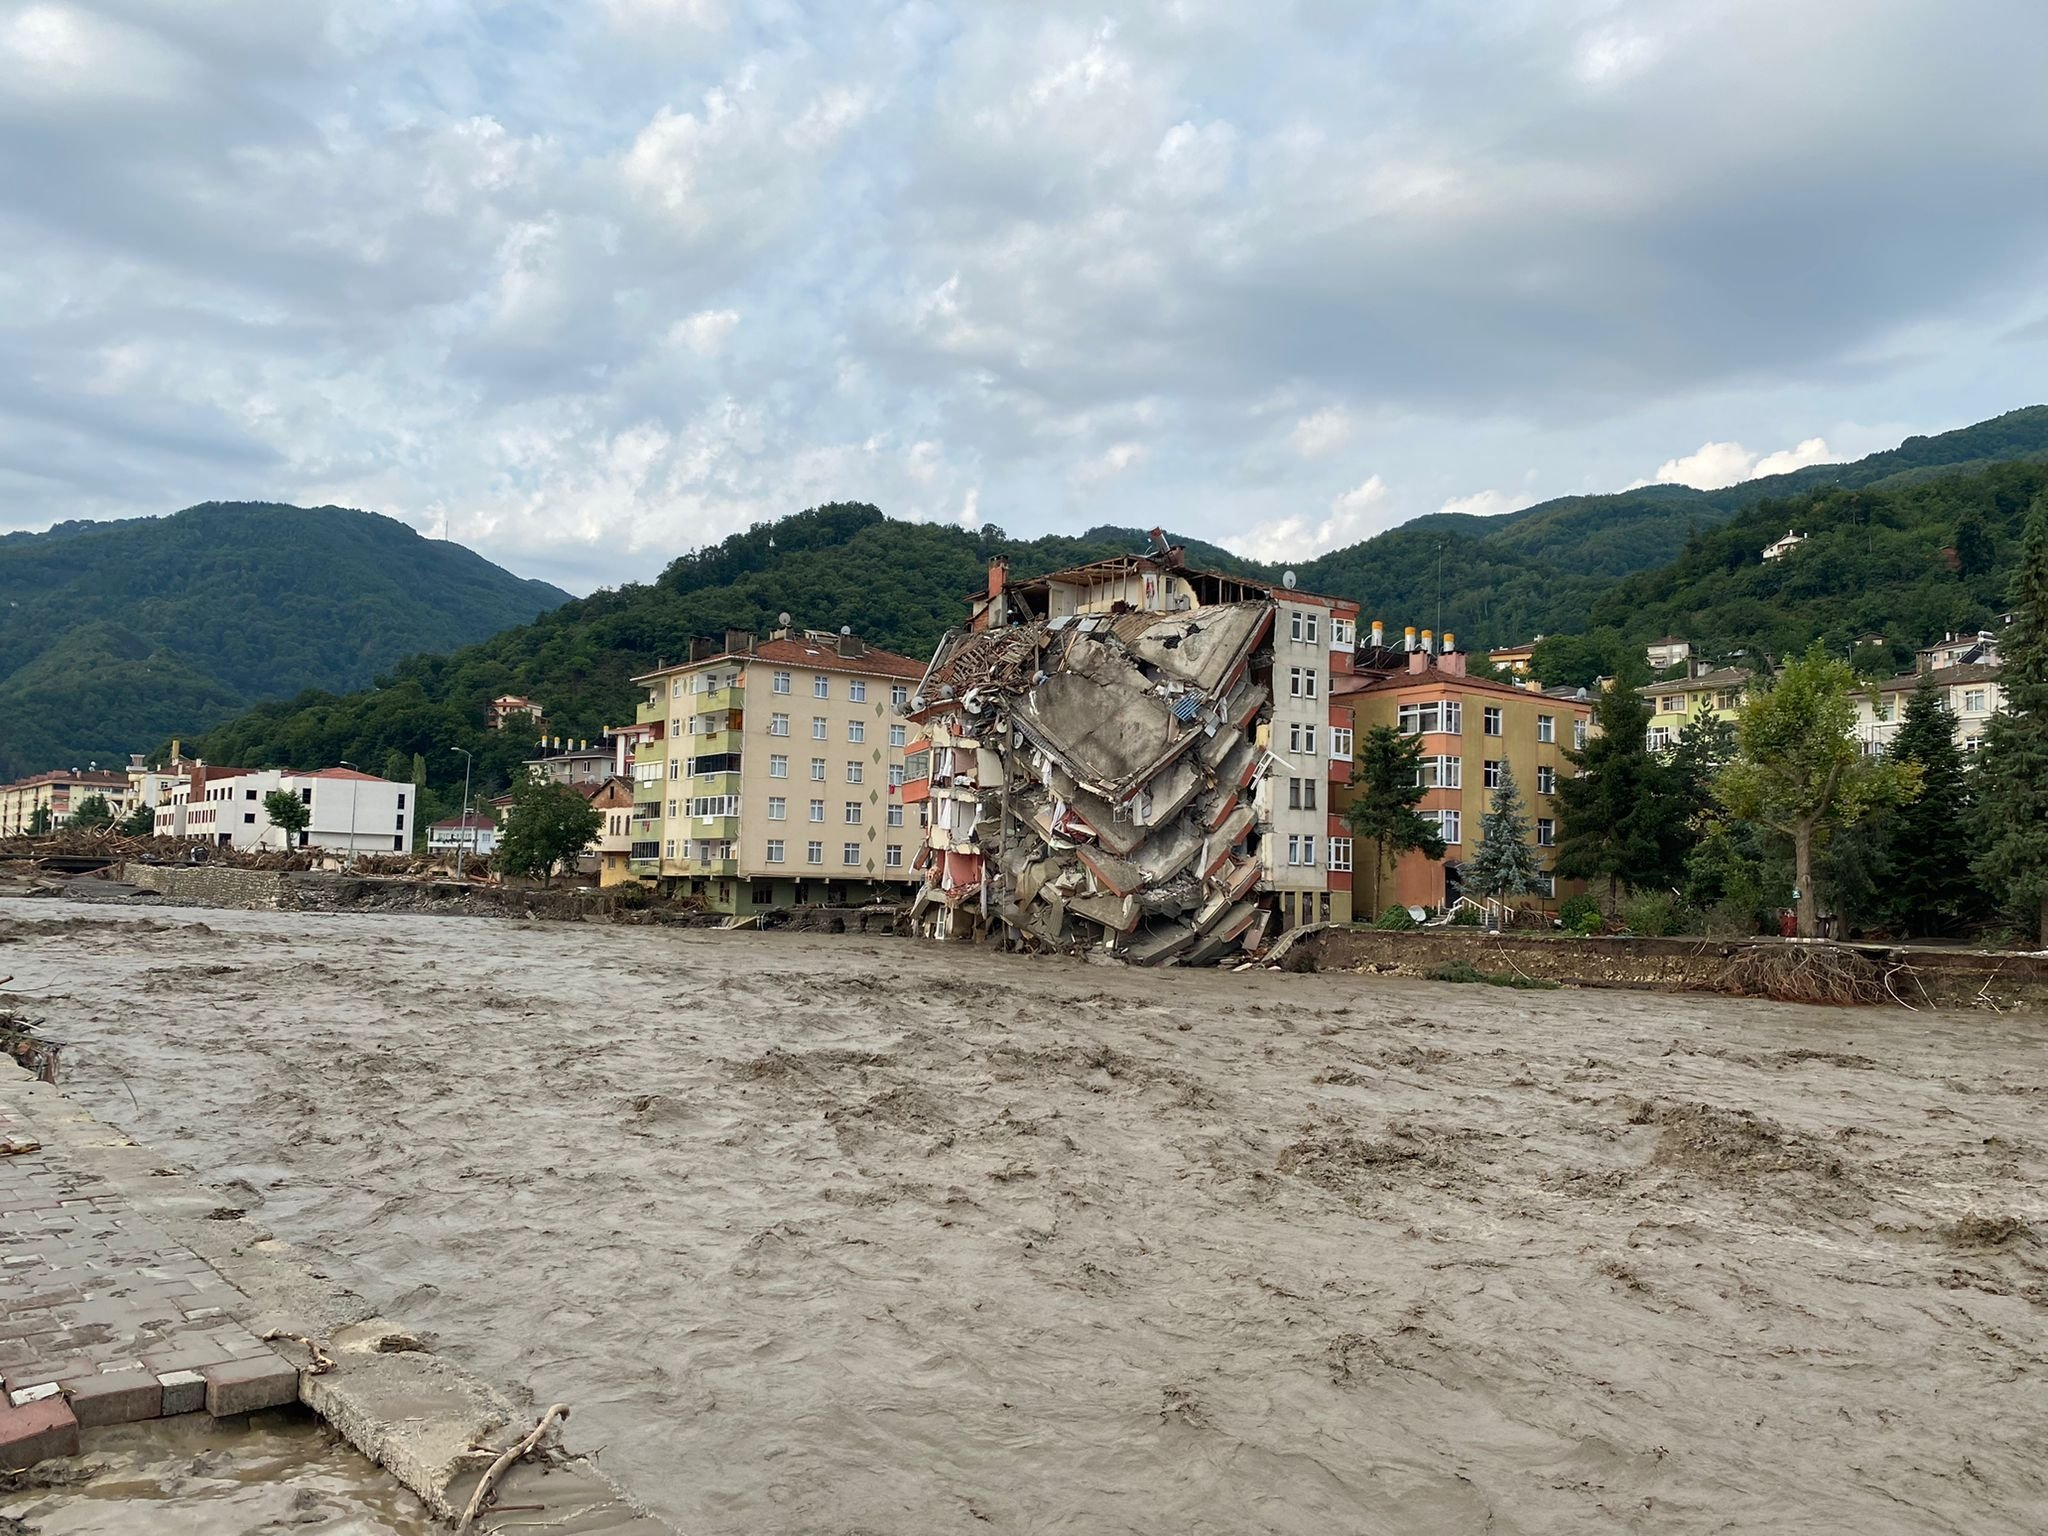 A view of a collapsed multistory building on the bank of a river in the Bozkurt district of Kastamonu province, northern Turkey, Aug. 12, 2021. (DHA PHOTO)